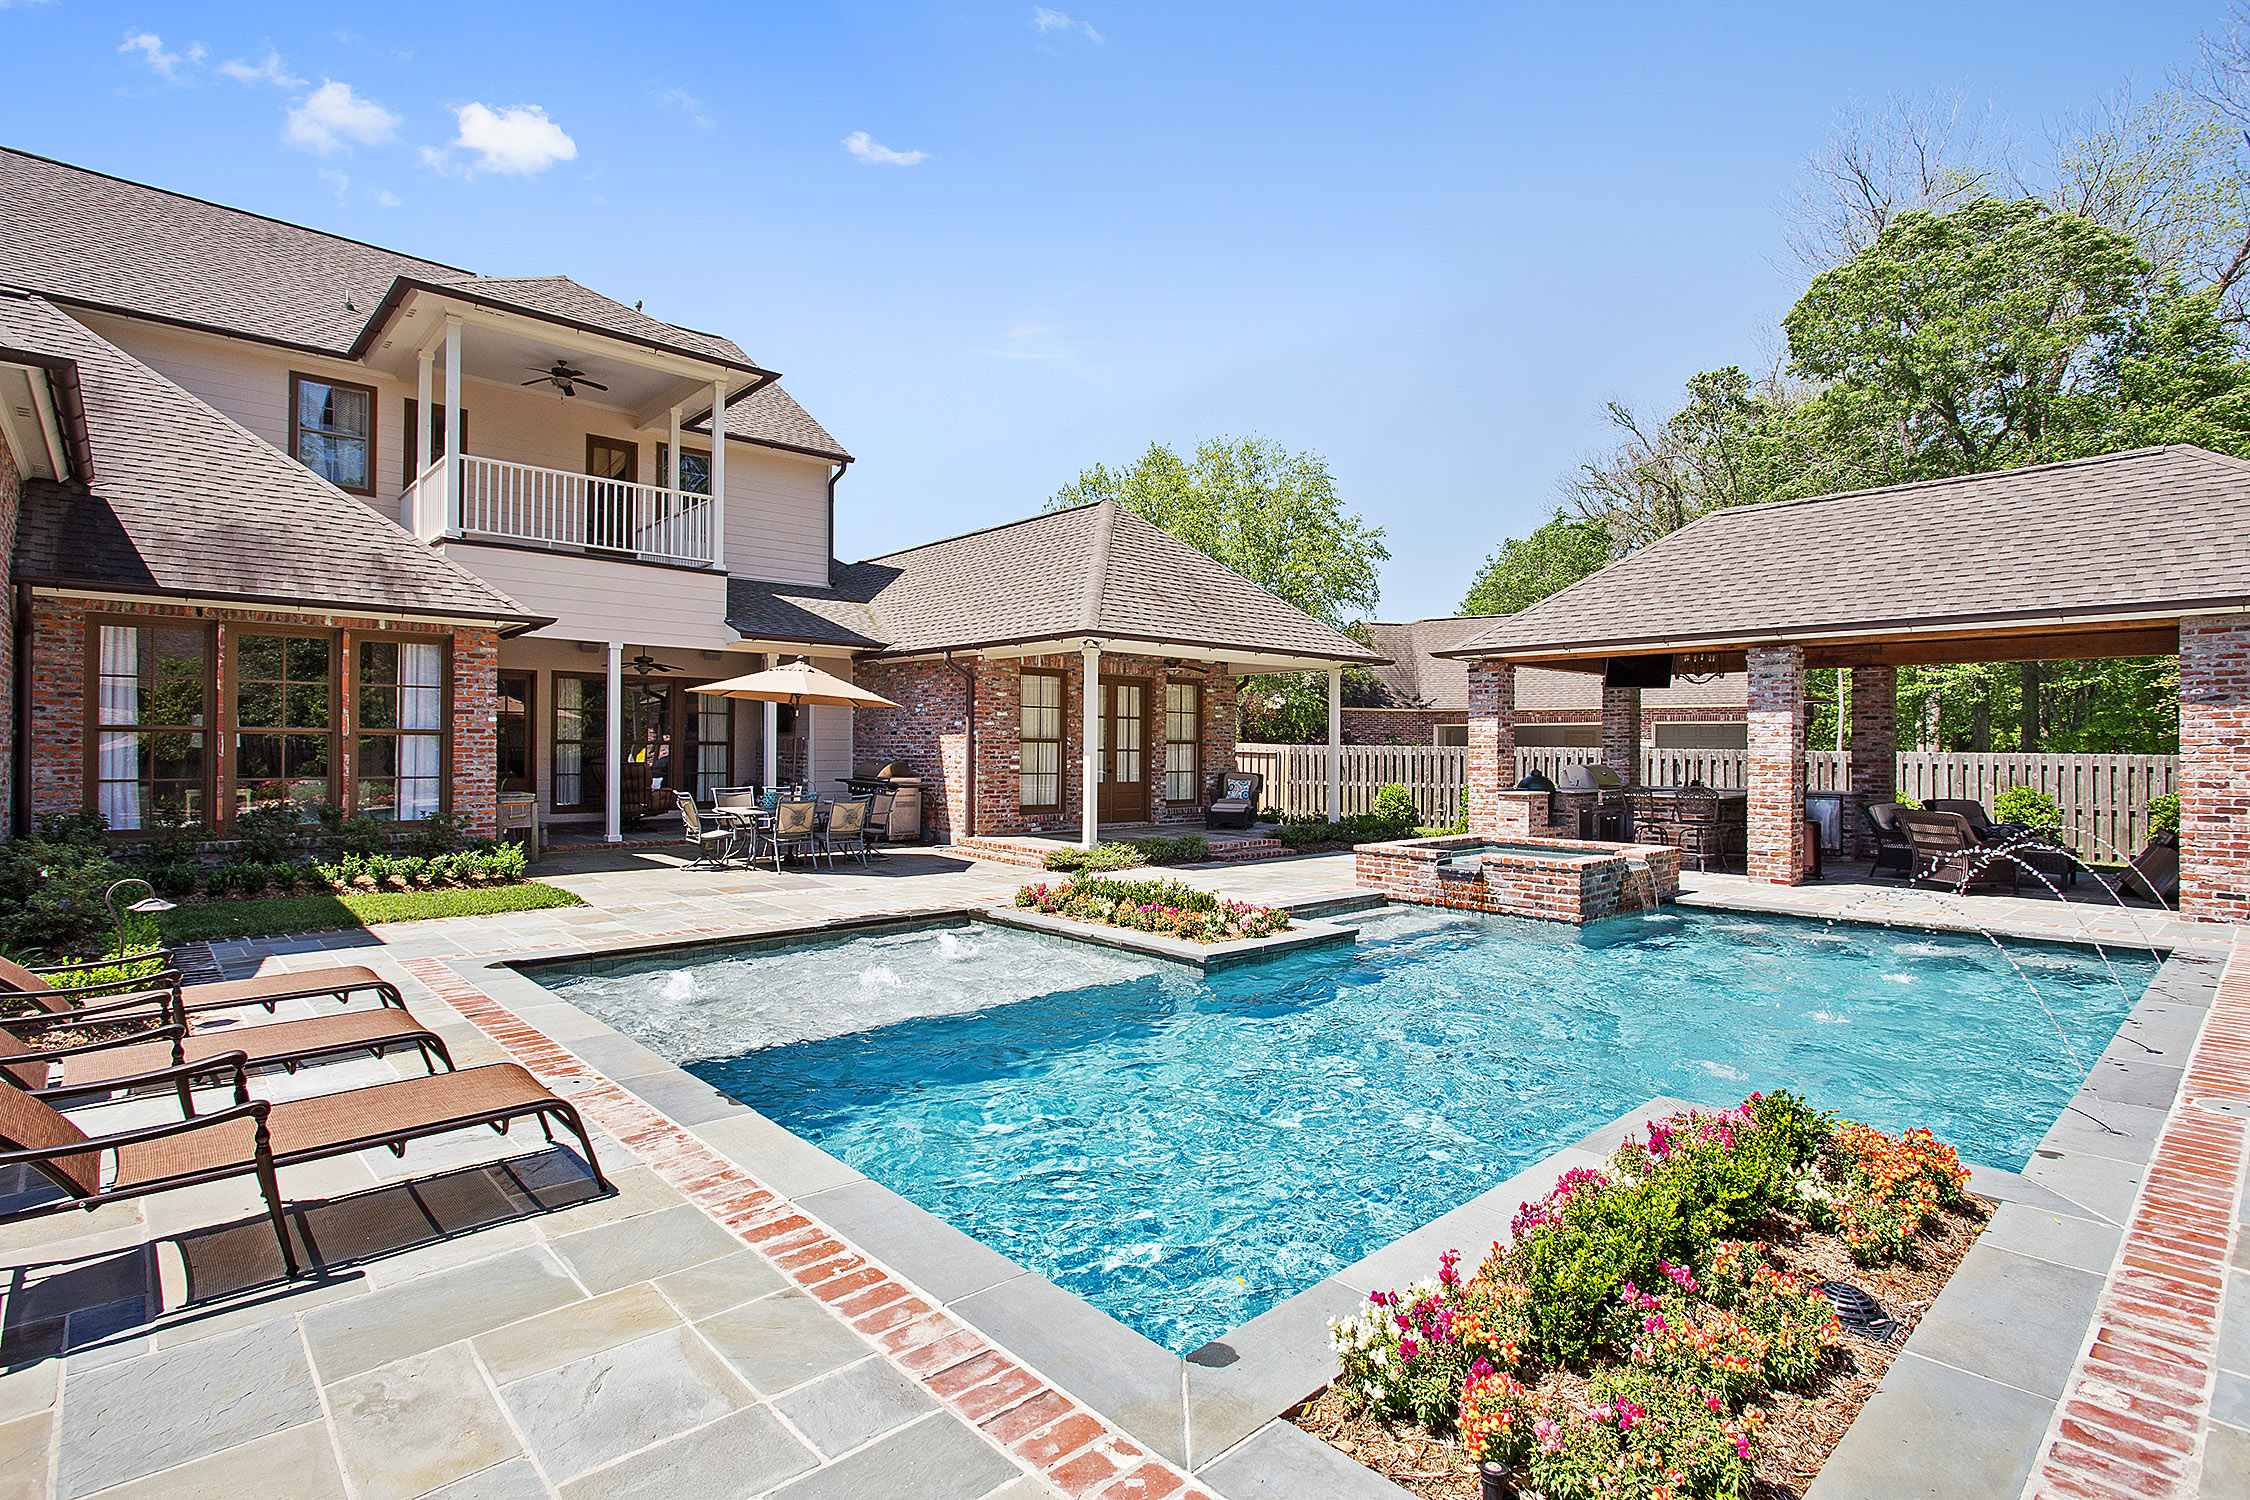 Baton rouge residential and commercial pools lucas for Custom home designs baton rouge